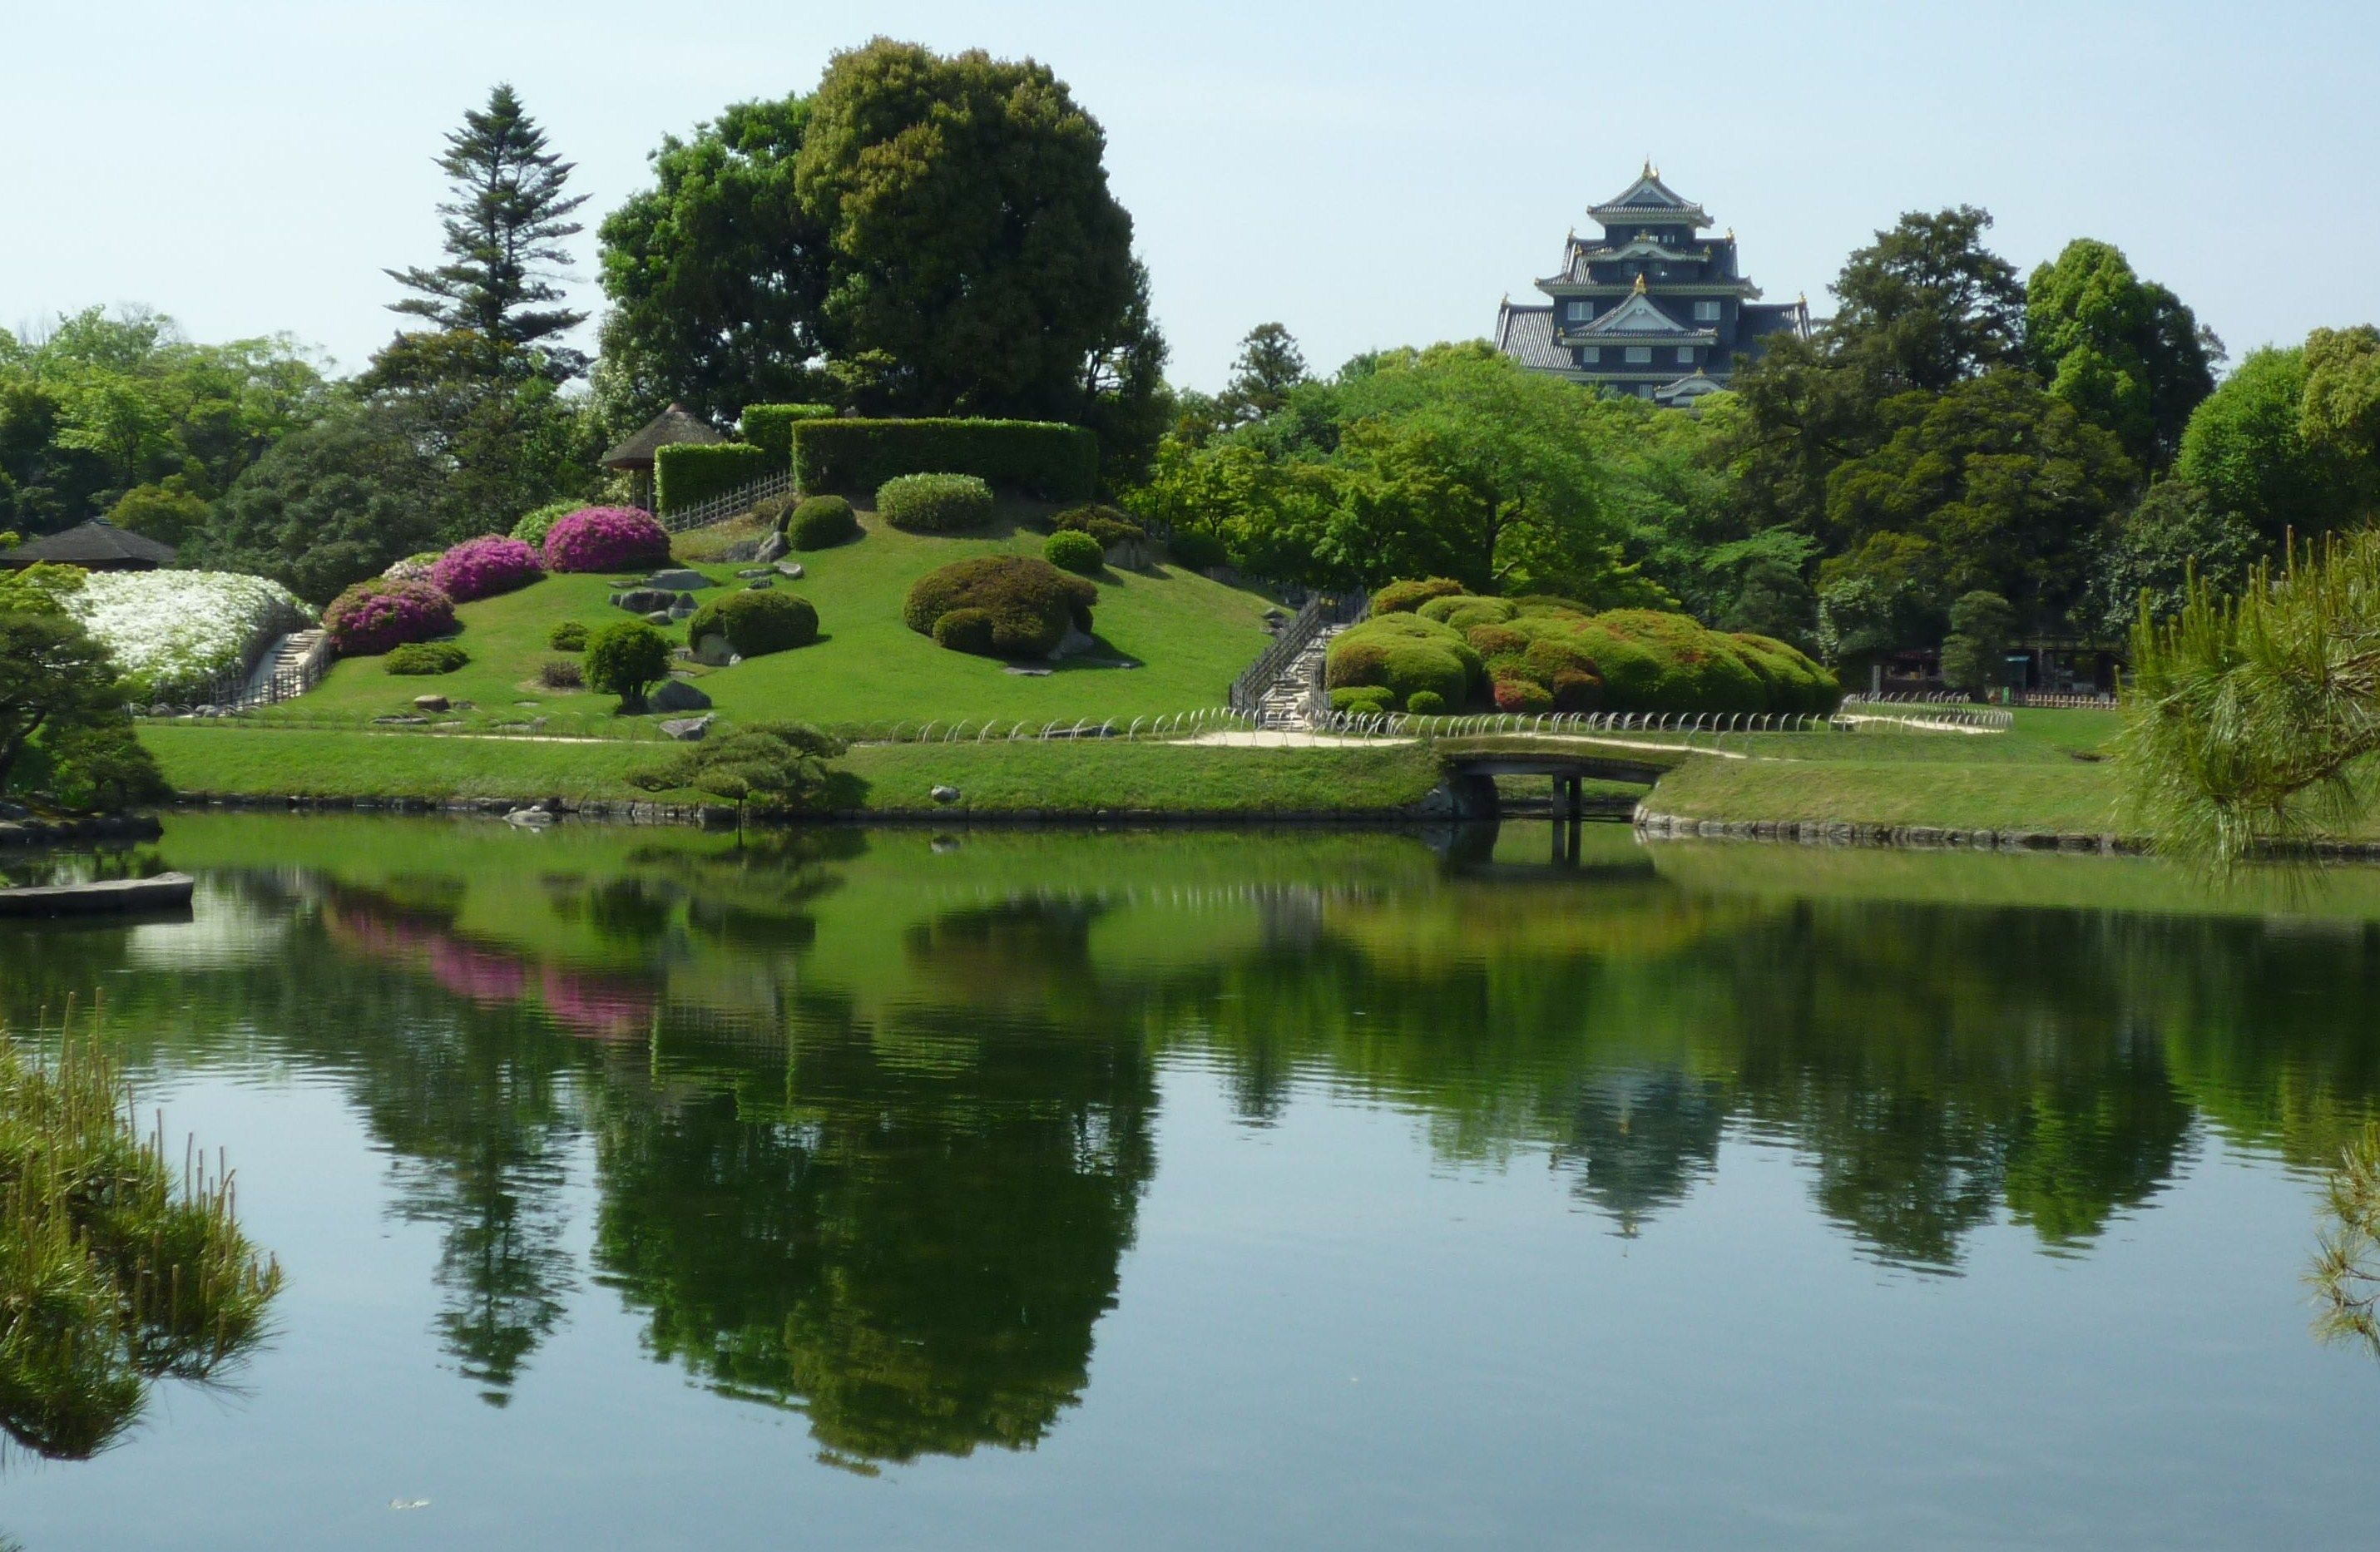 https://upload.wikimedia.org/wikipedia/commons/4/4b/Okayama_Korakuen_Garden01.jpg